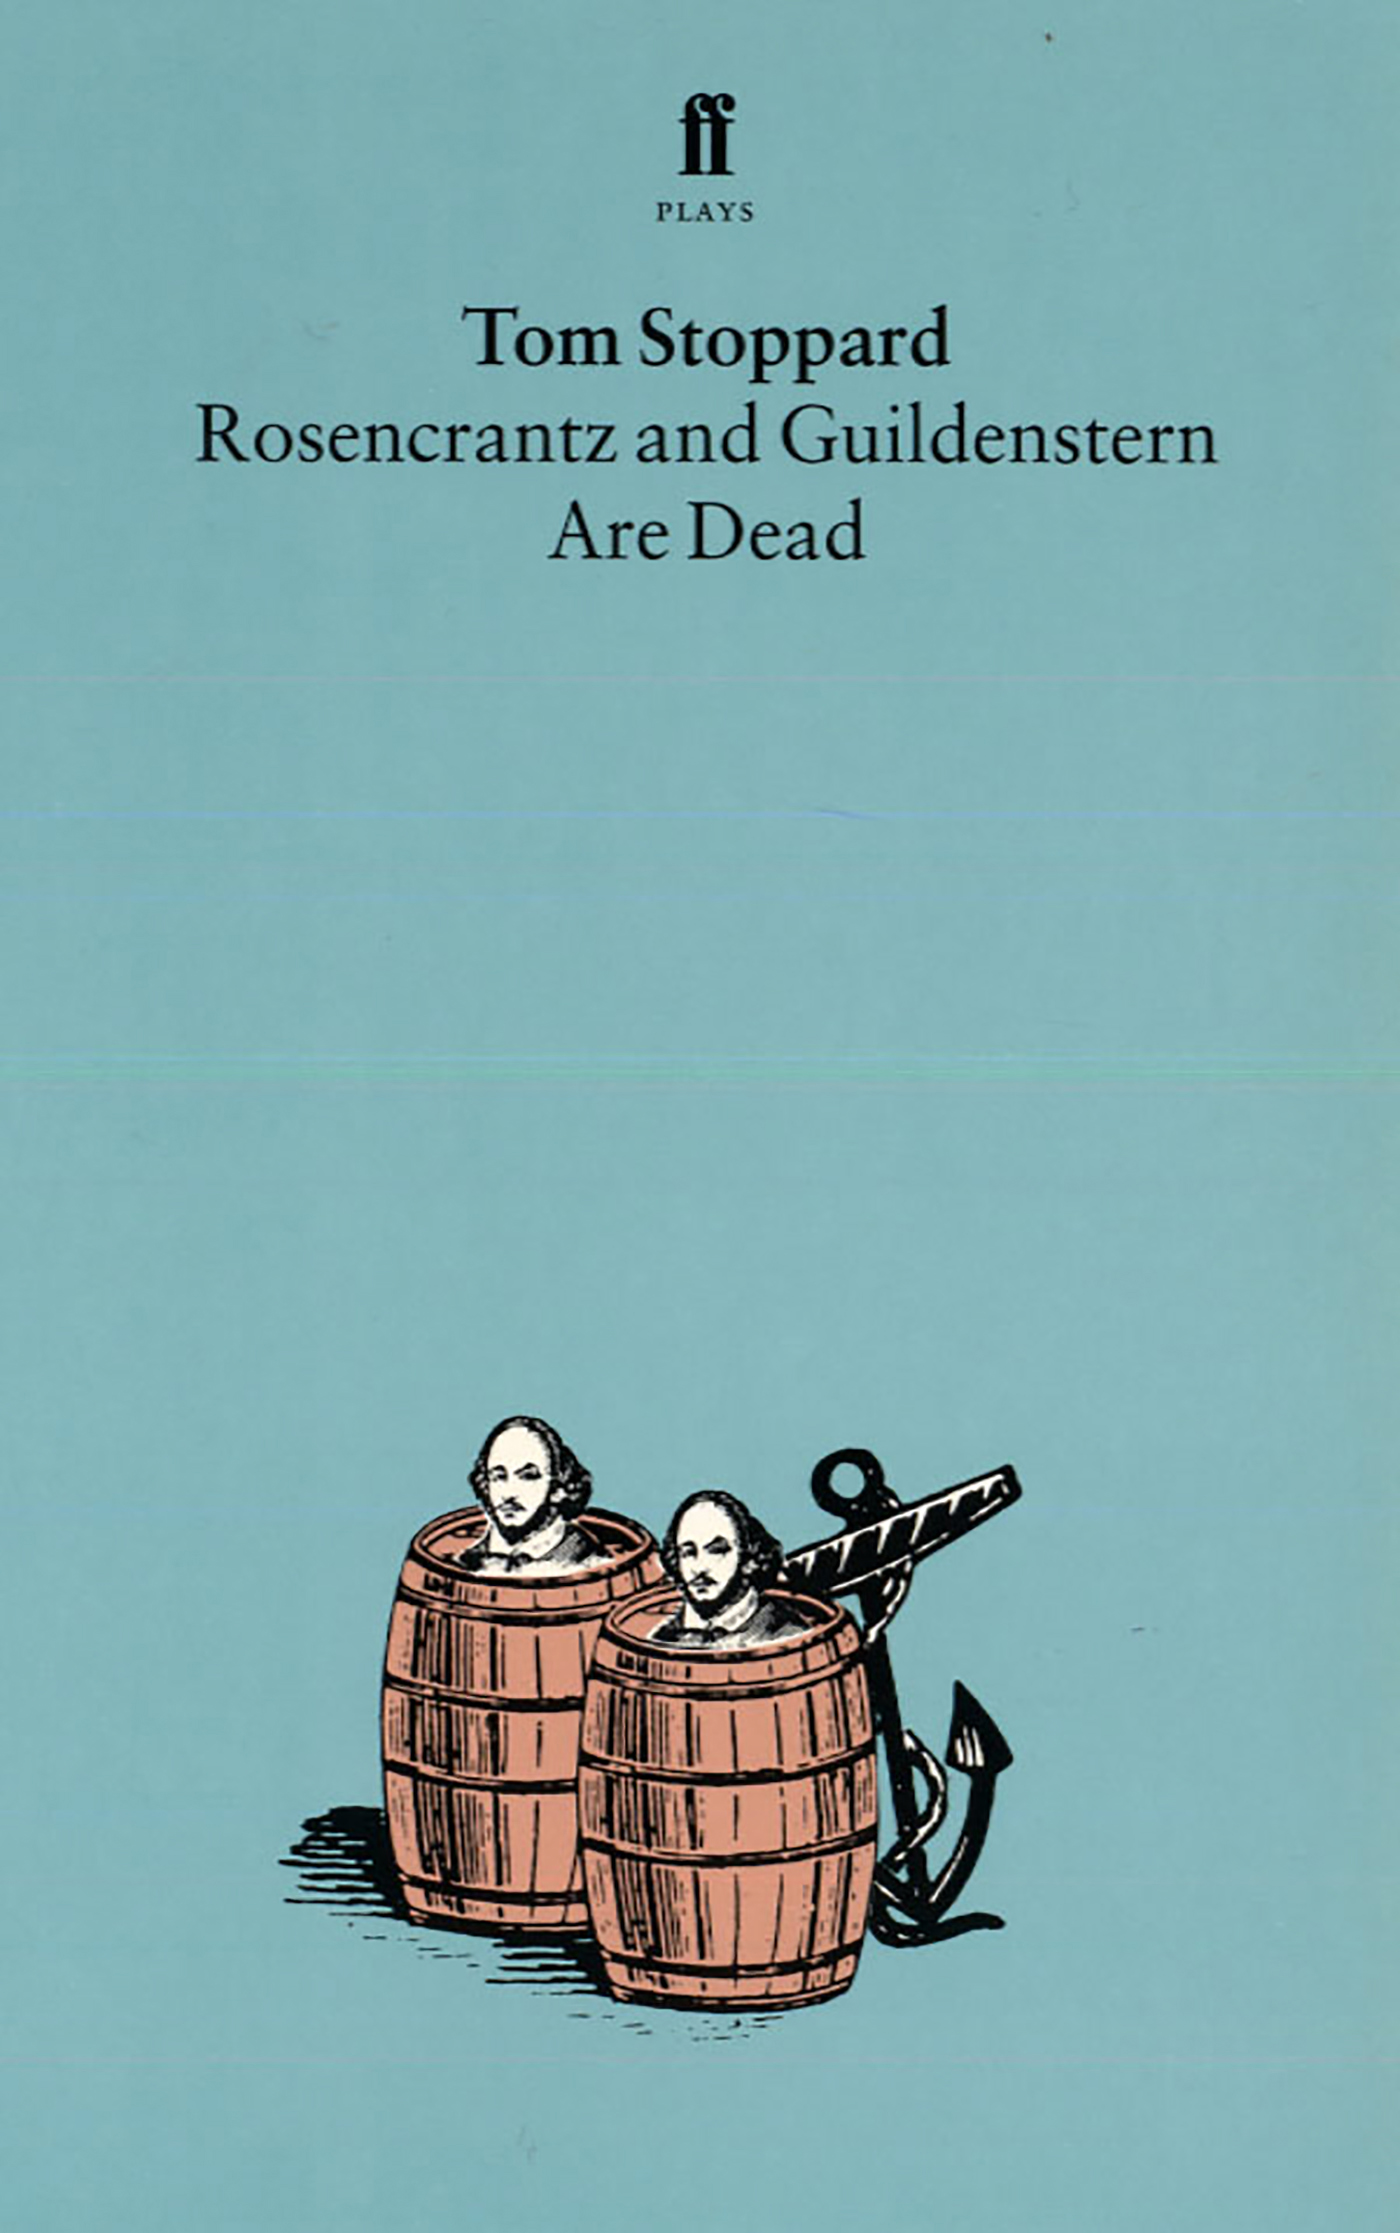 disortion in rosencrantz and guildenstern are dead by tom stoppard